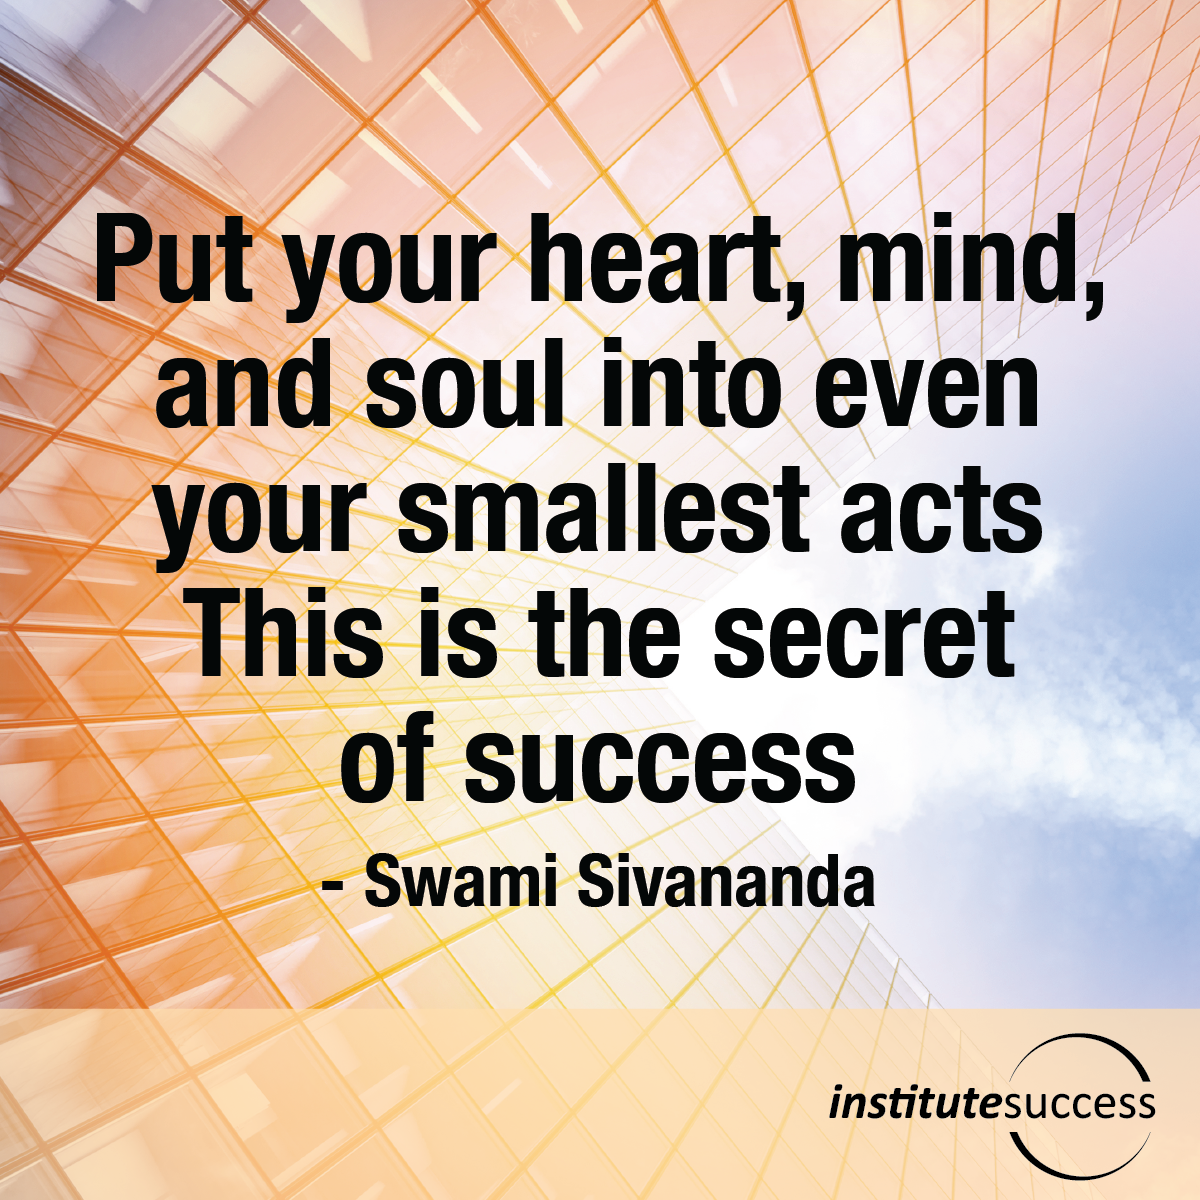 Put your heart, mind, and soul into even your smallest acts. This is the secret of success – Swami Sivananda